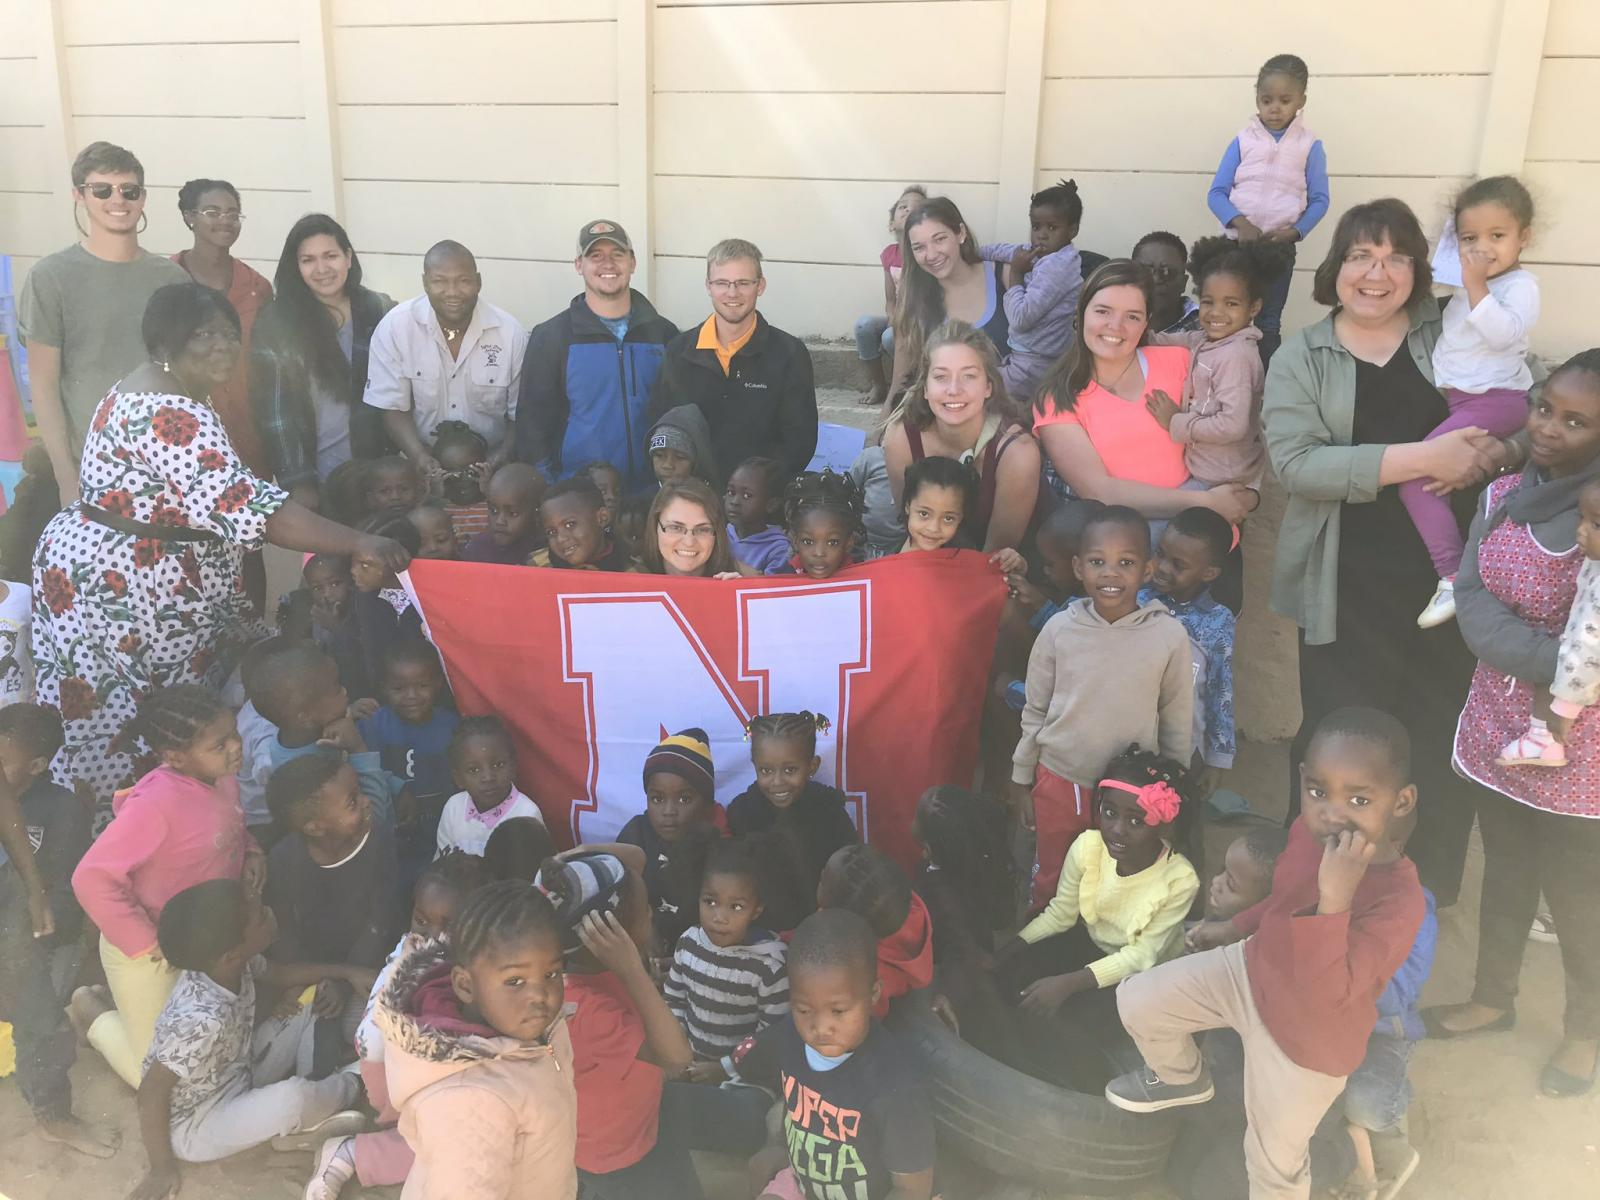 Our wildlife conservation students visit a preschool where Kelly worked during our  @FulbrightPrgrm  year in Namibia.